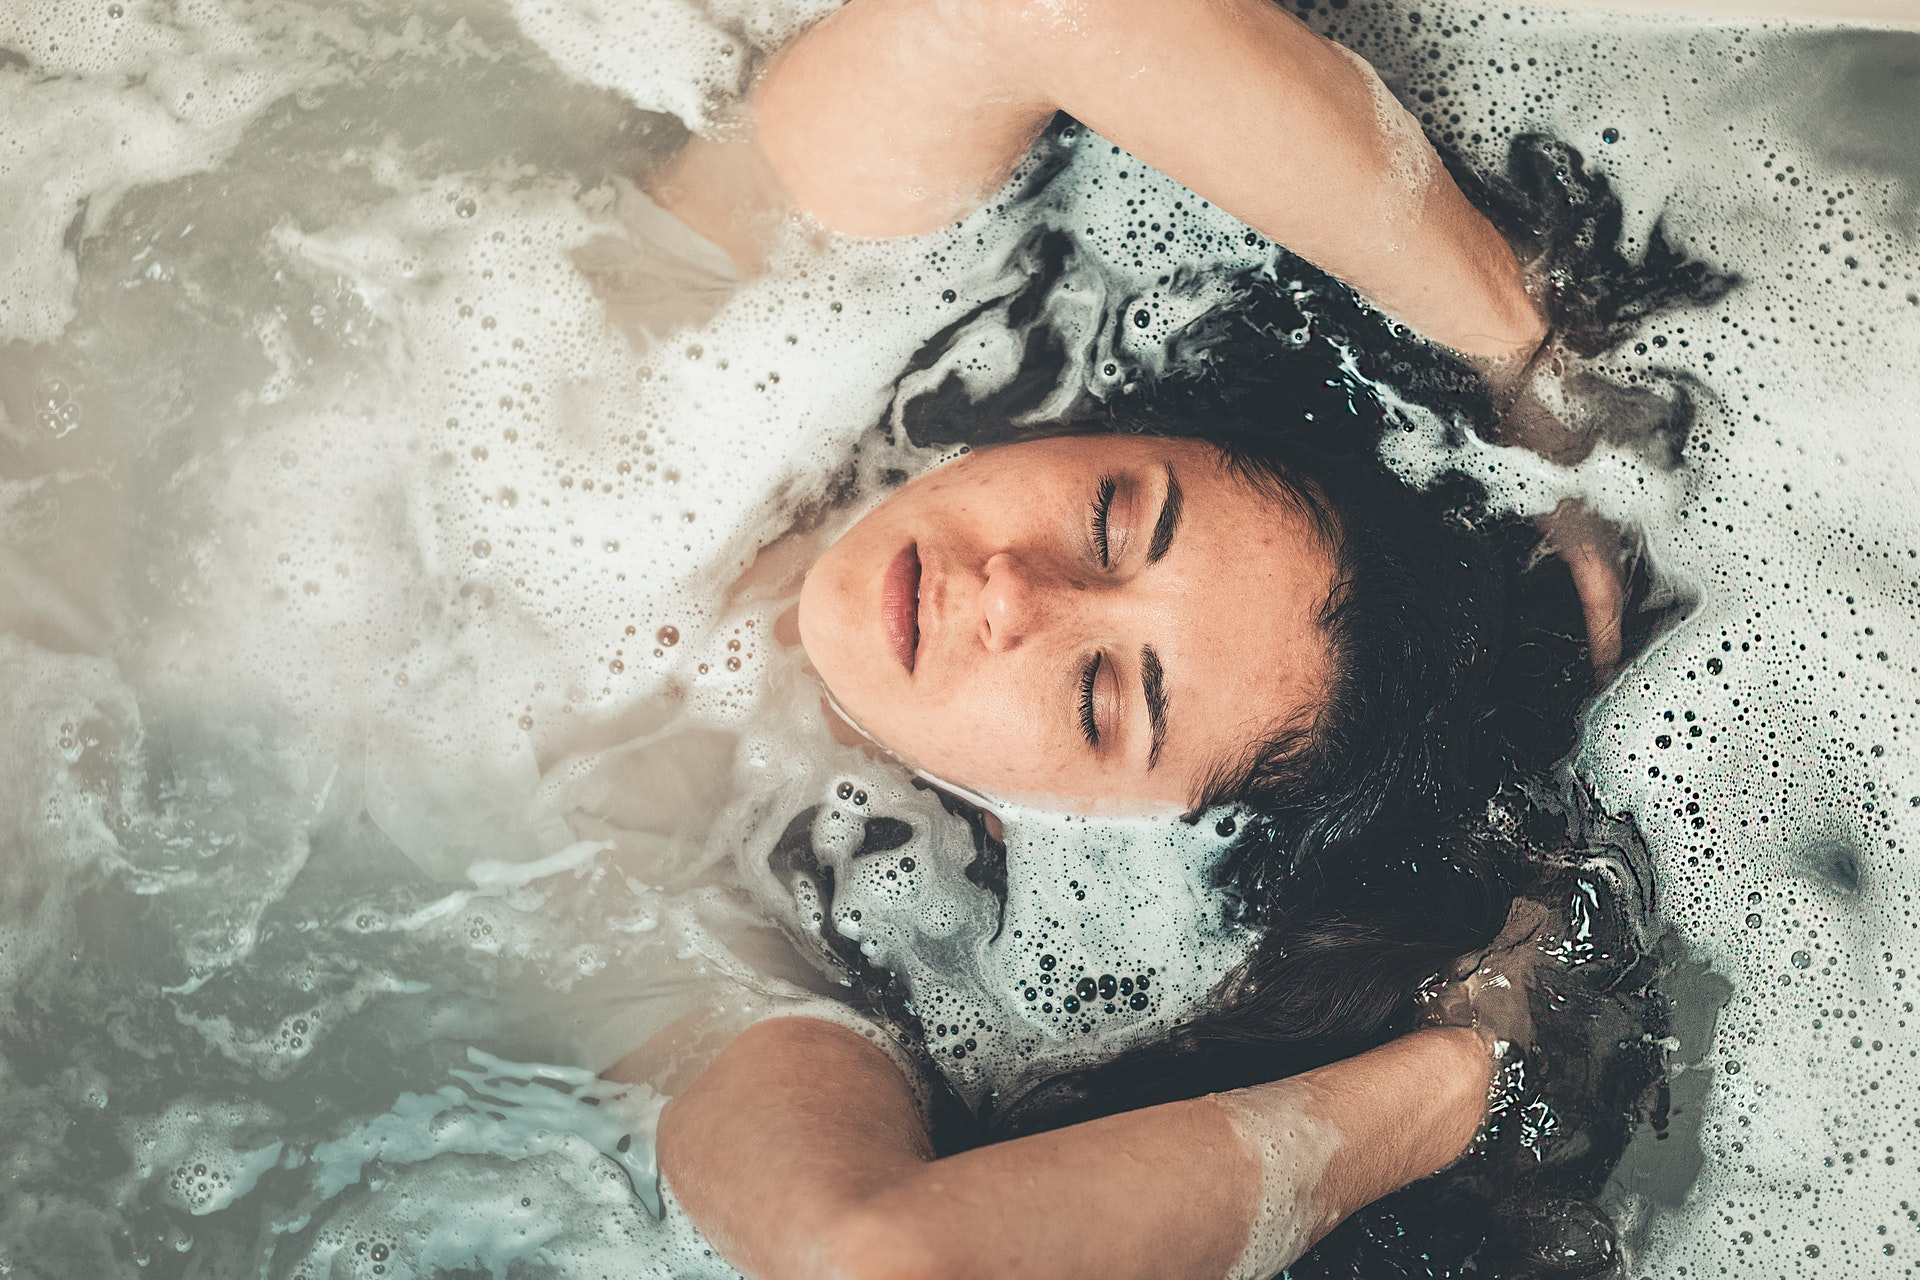 https://www.pexels.com/photo/woman-in-bath-tub-2306210/